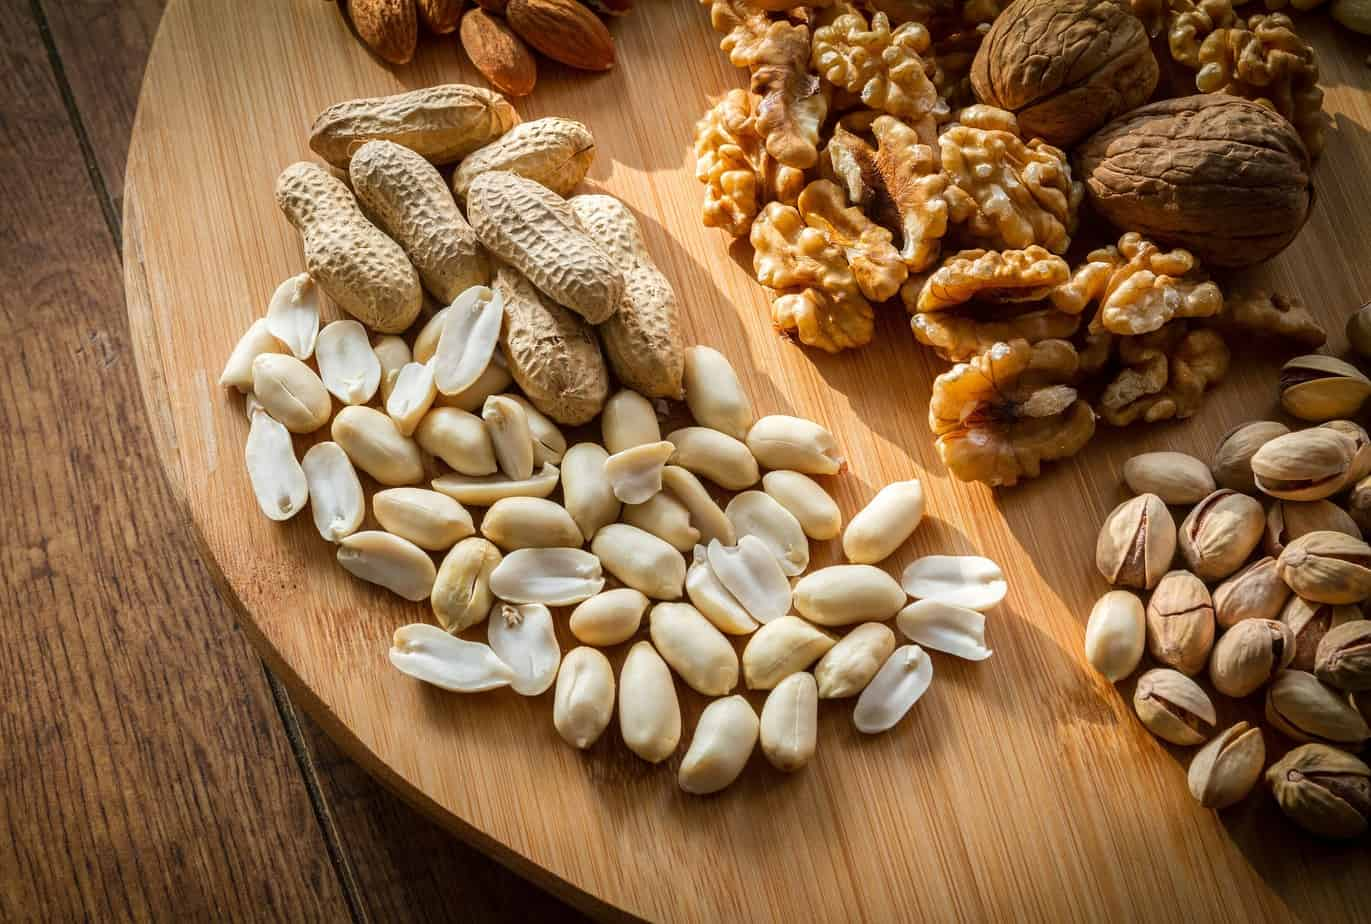 peanuts, walnuts, and pistachios